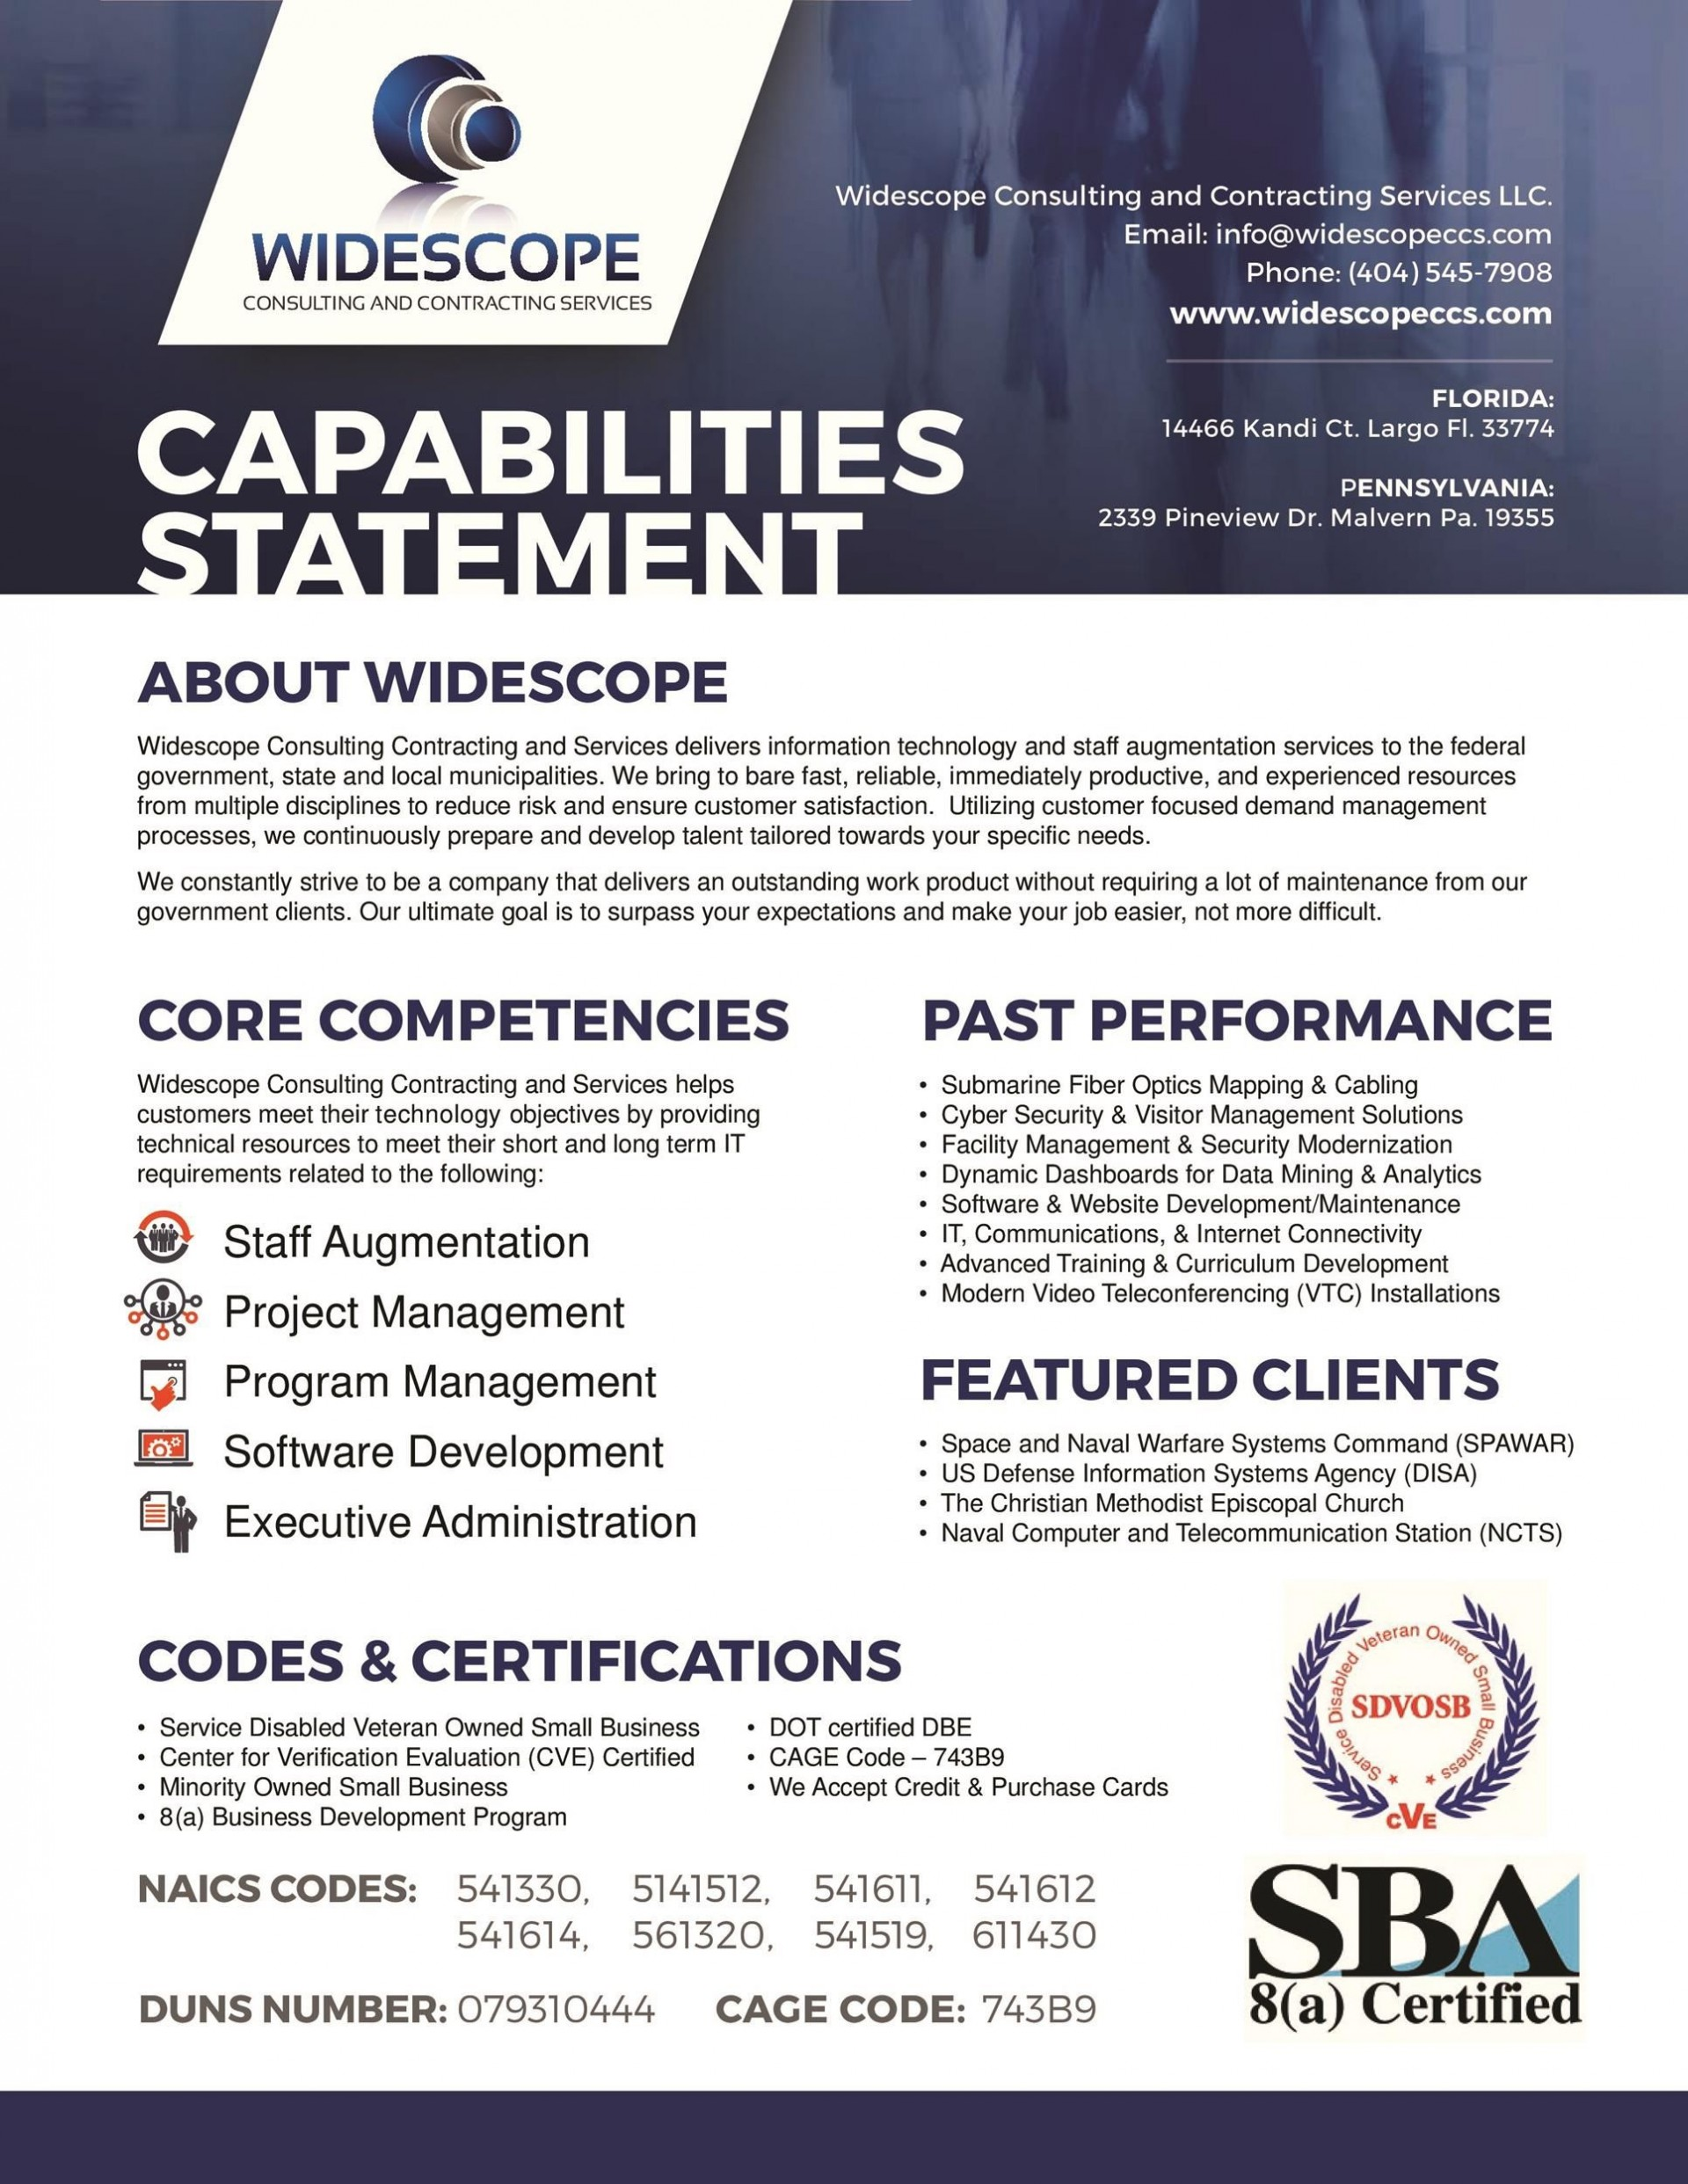 008 Surprising Capability Statement Template Free Picture  Word Editable Design1920